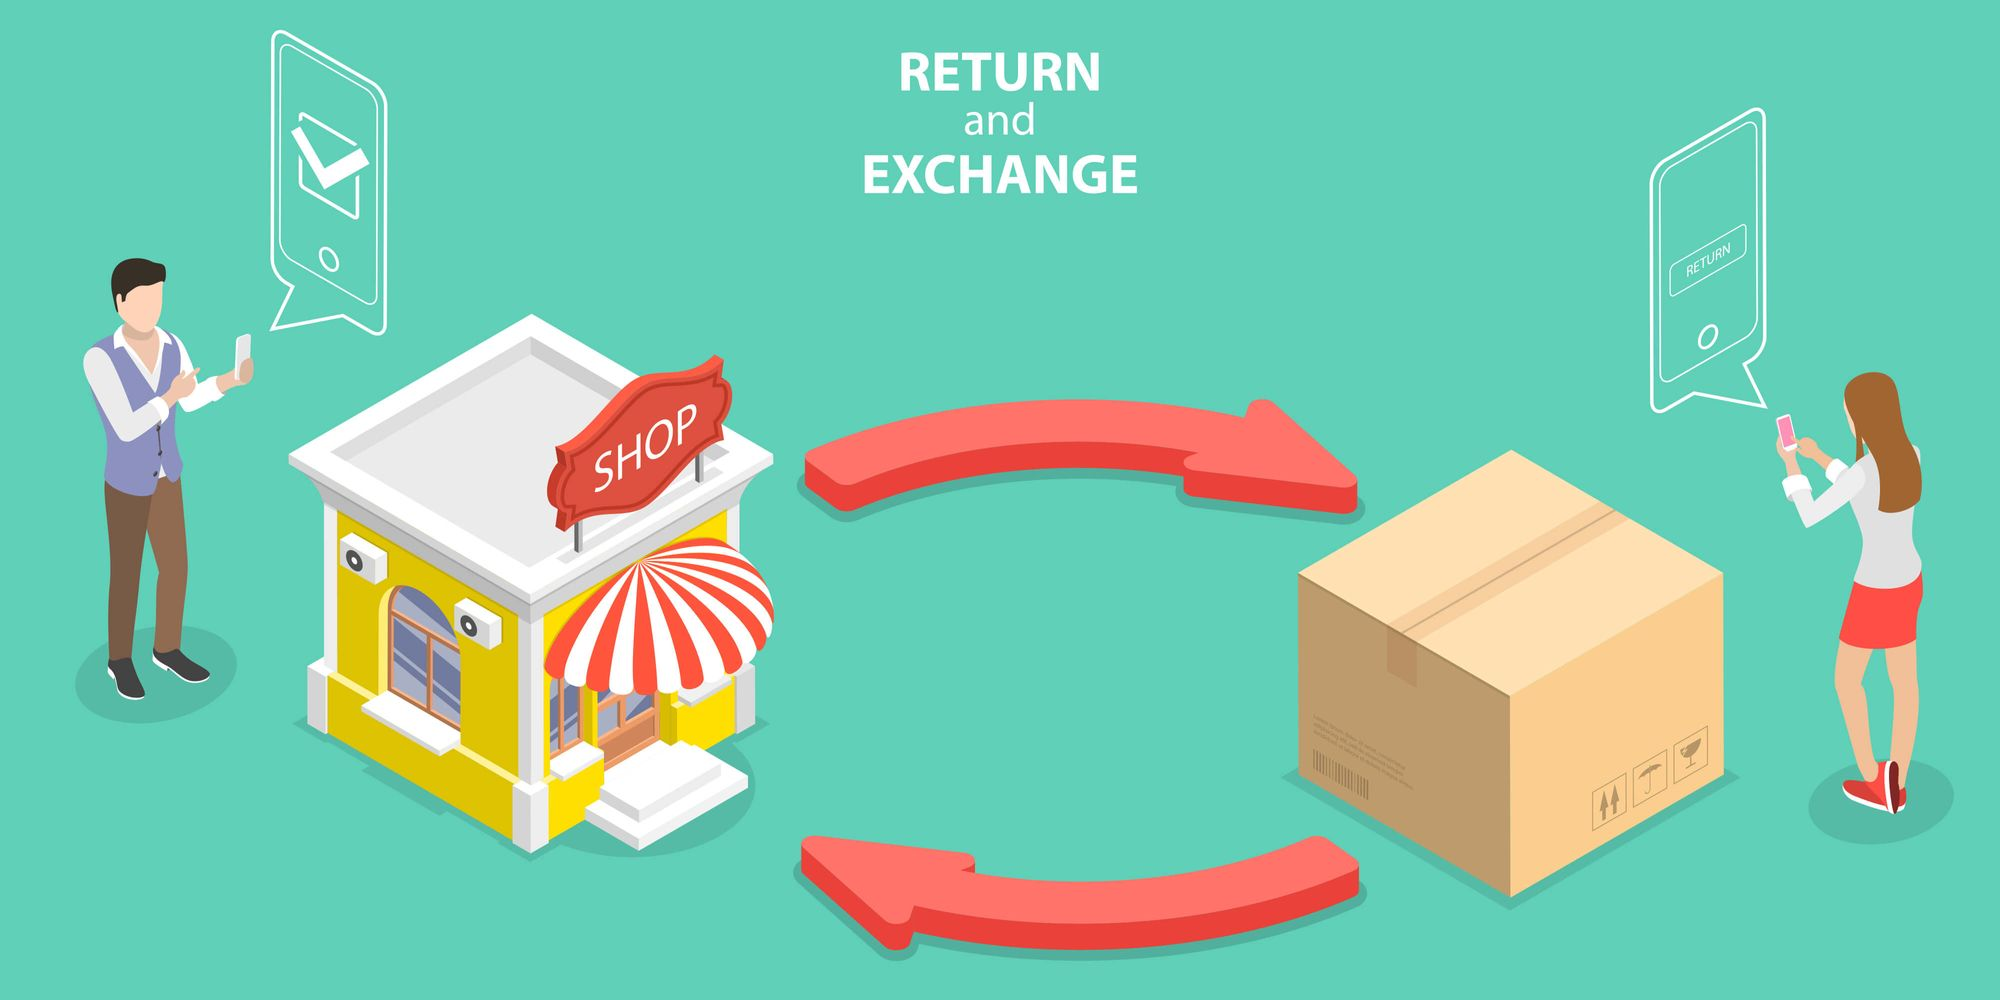 Product Exchange and Return Policy from shop to home